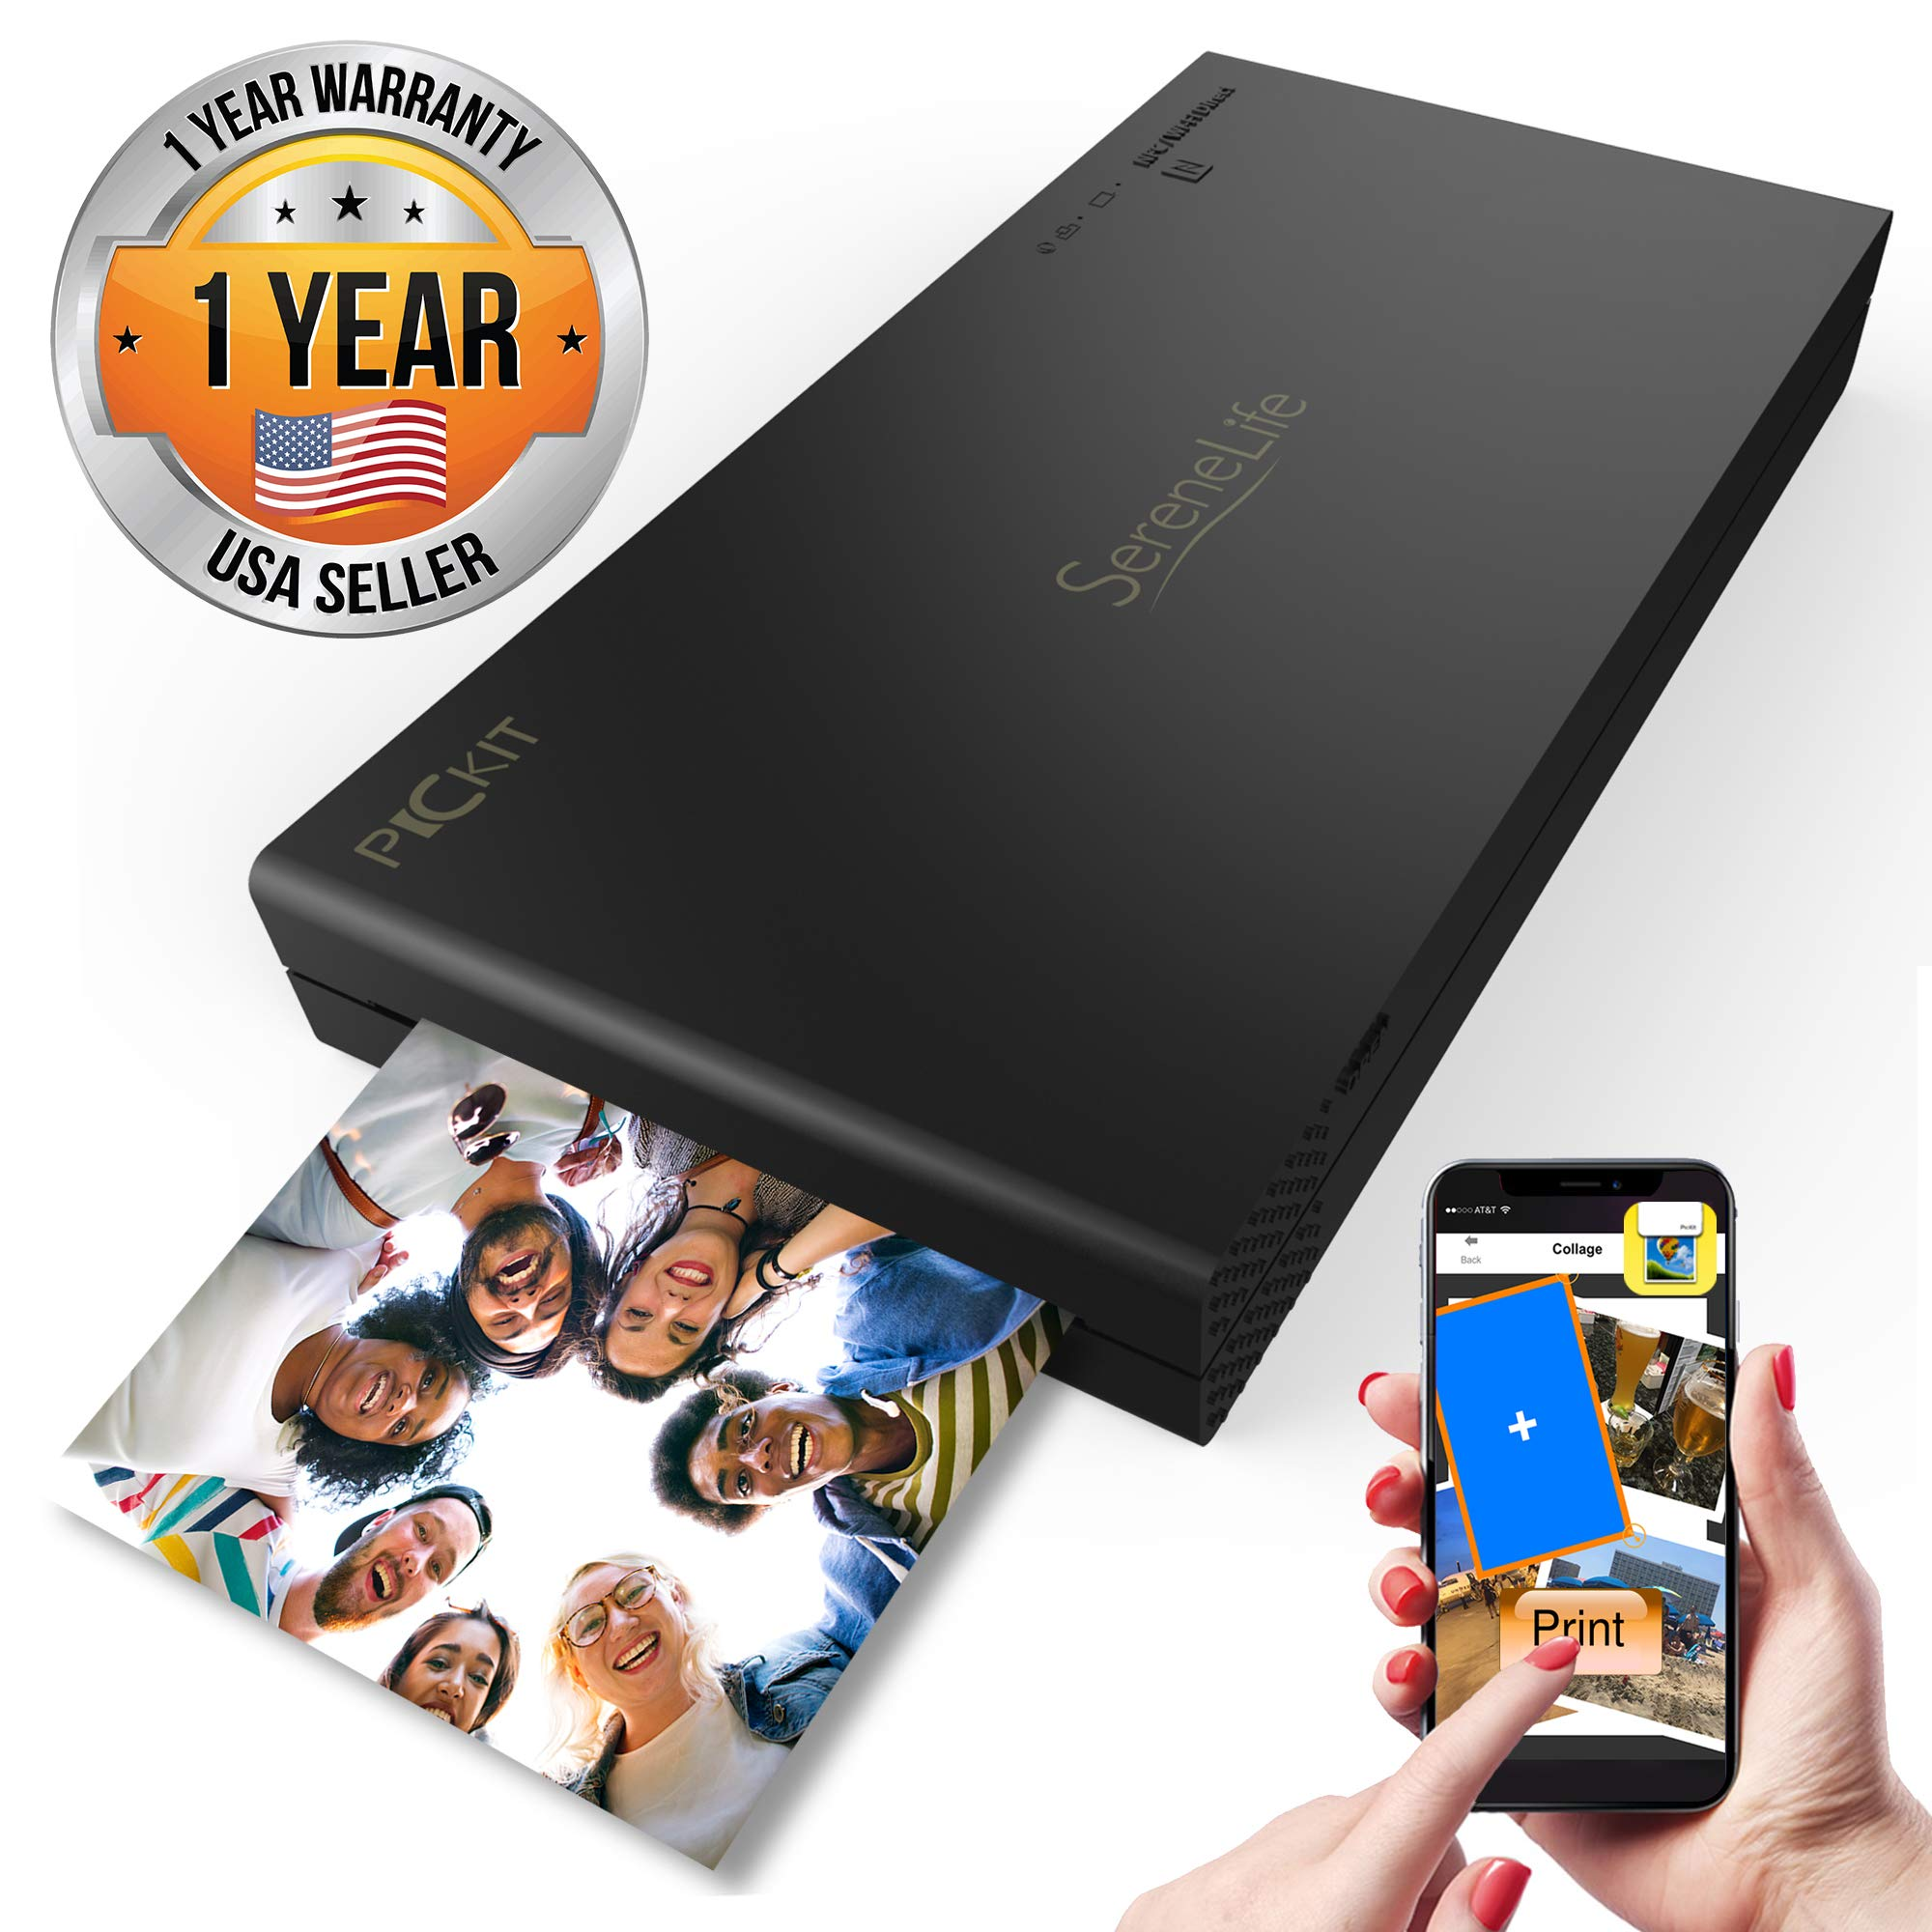 Portable Instant Mobile Photo Printer - Wireless Color Picture Printing from Apple iPhone, iPad or Android Smartphone Camera - Mini Compact Pocket Size Easy for Travel - SereneLife PICKIT22BK (Black) by SereneLife